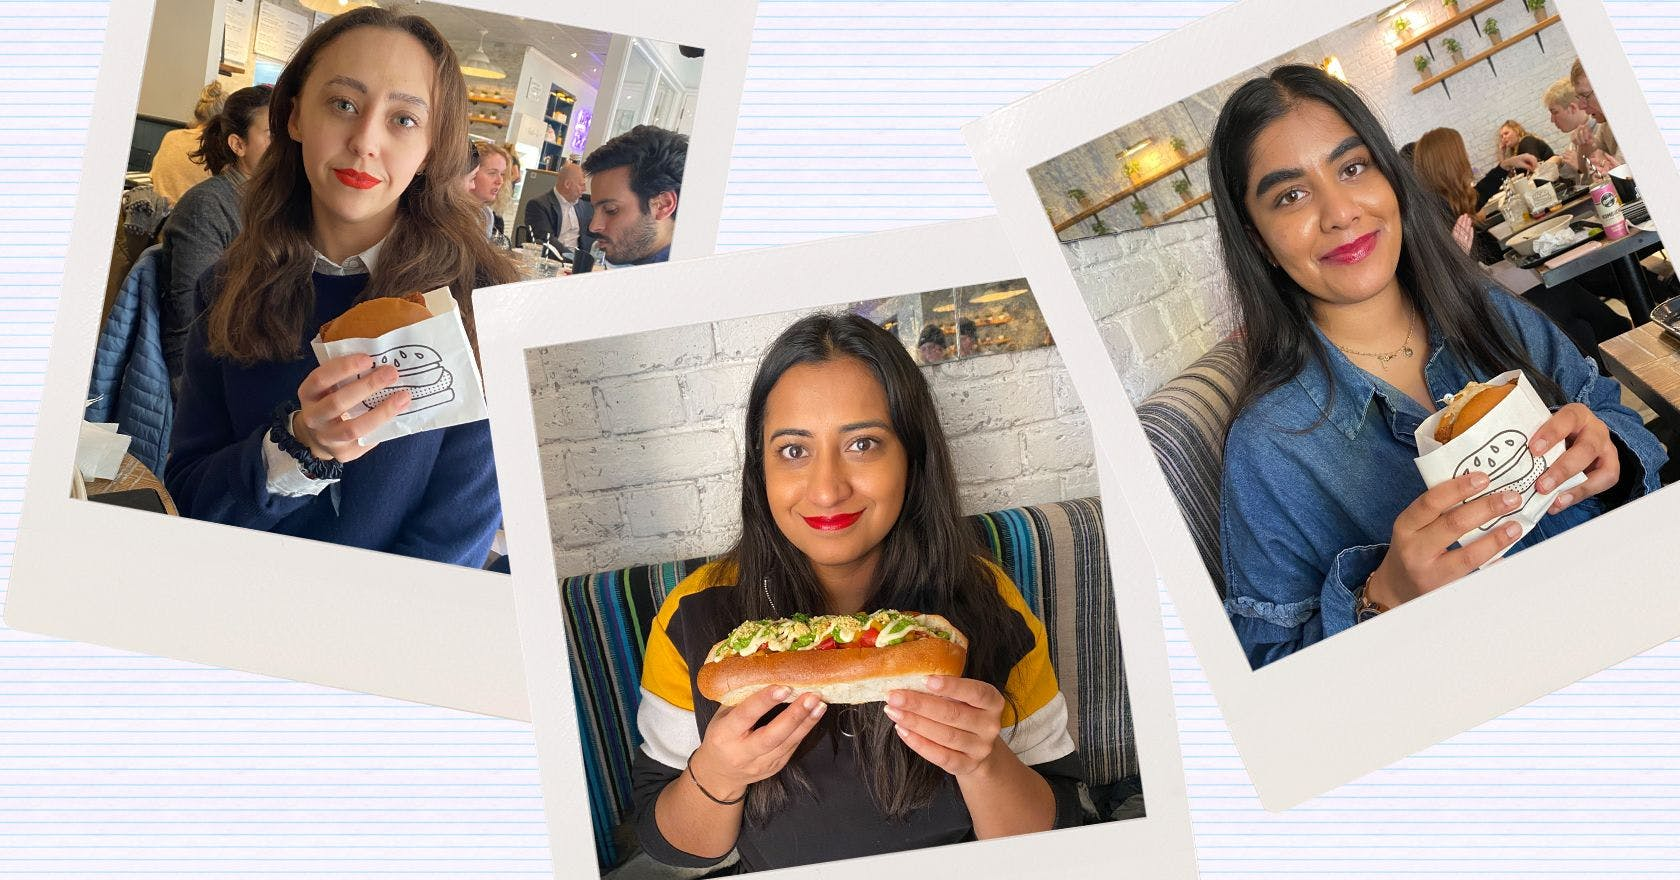 We tested 3 different lip products by eating burgers, and this is what happened